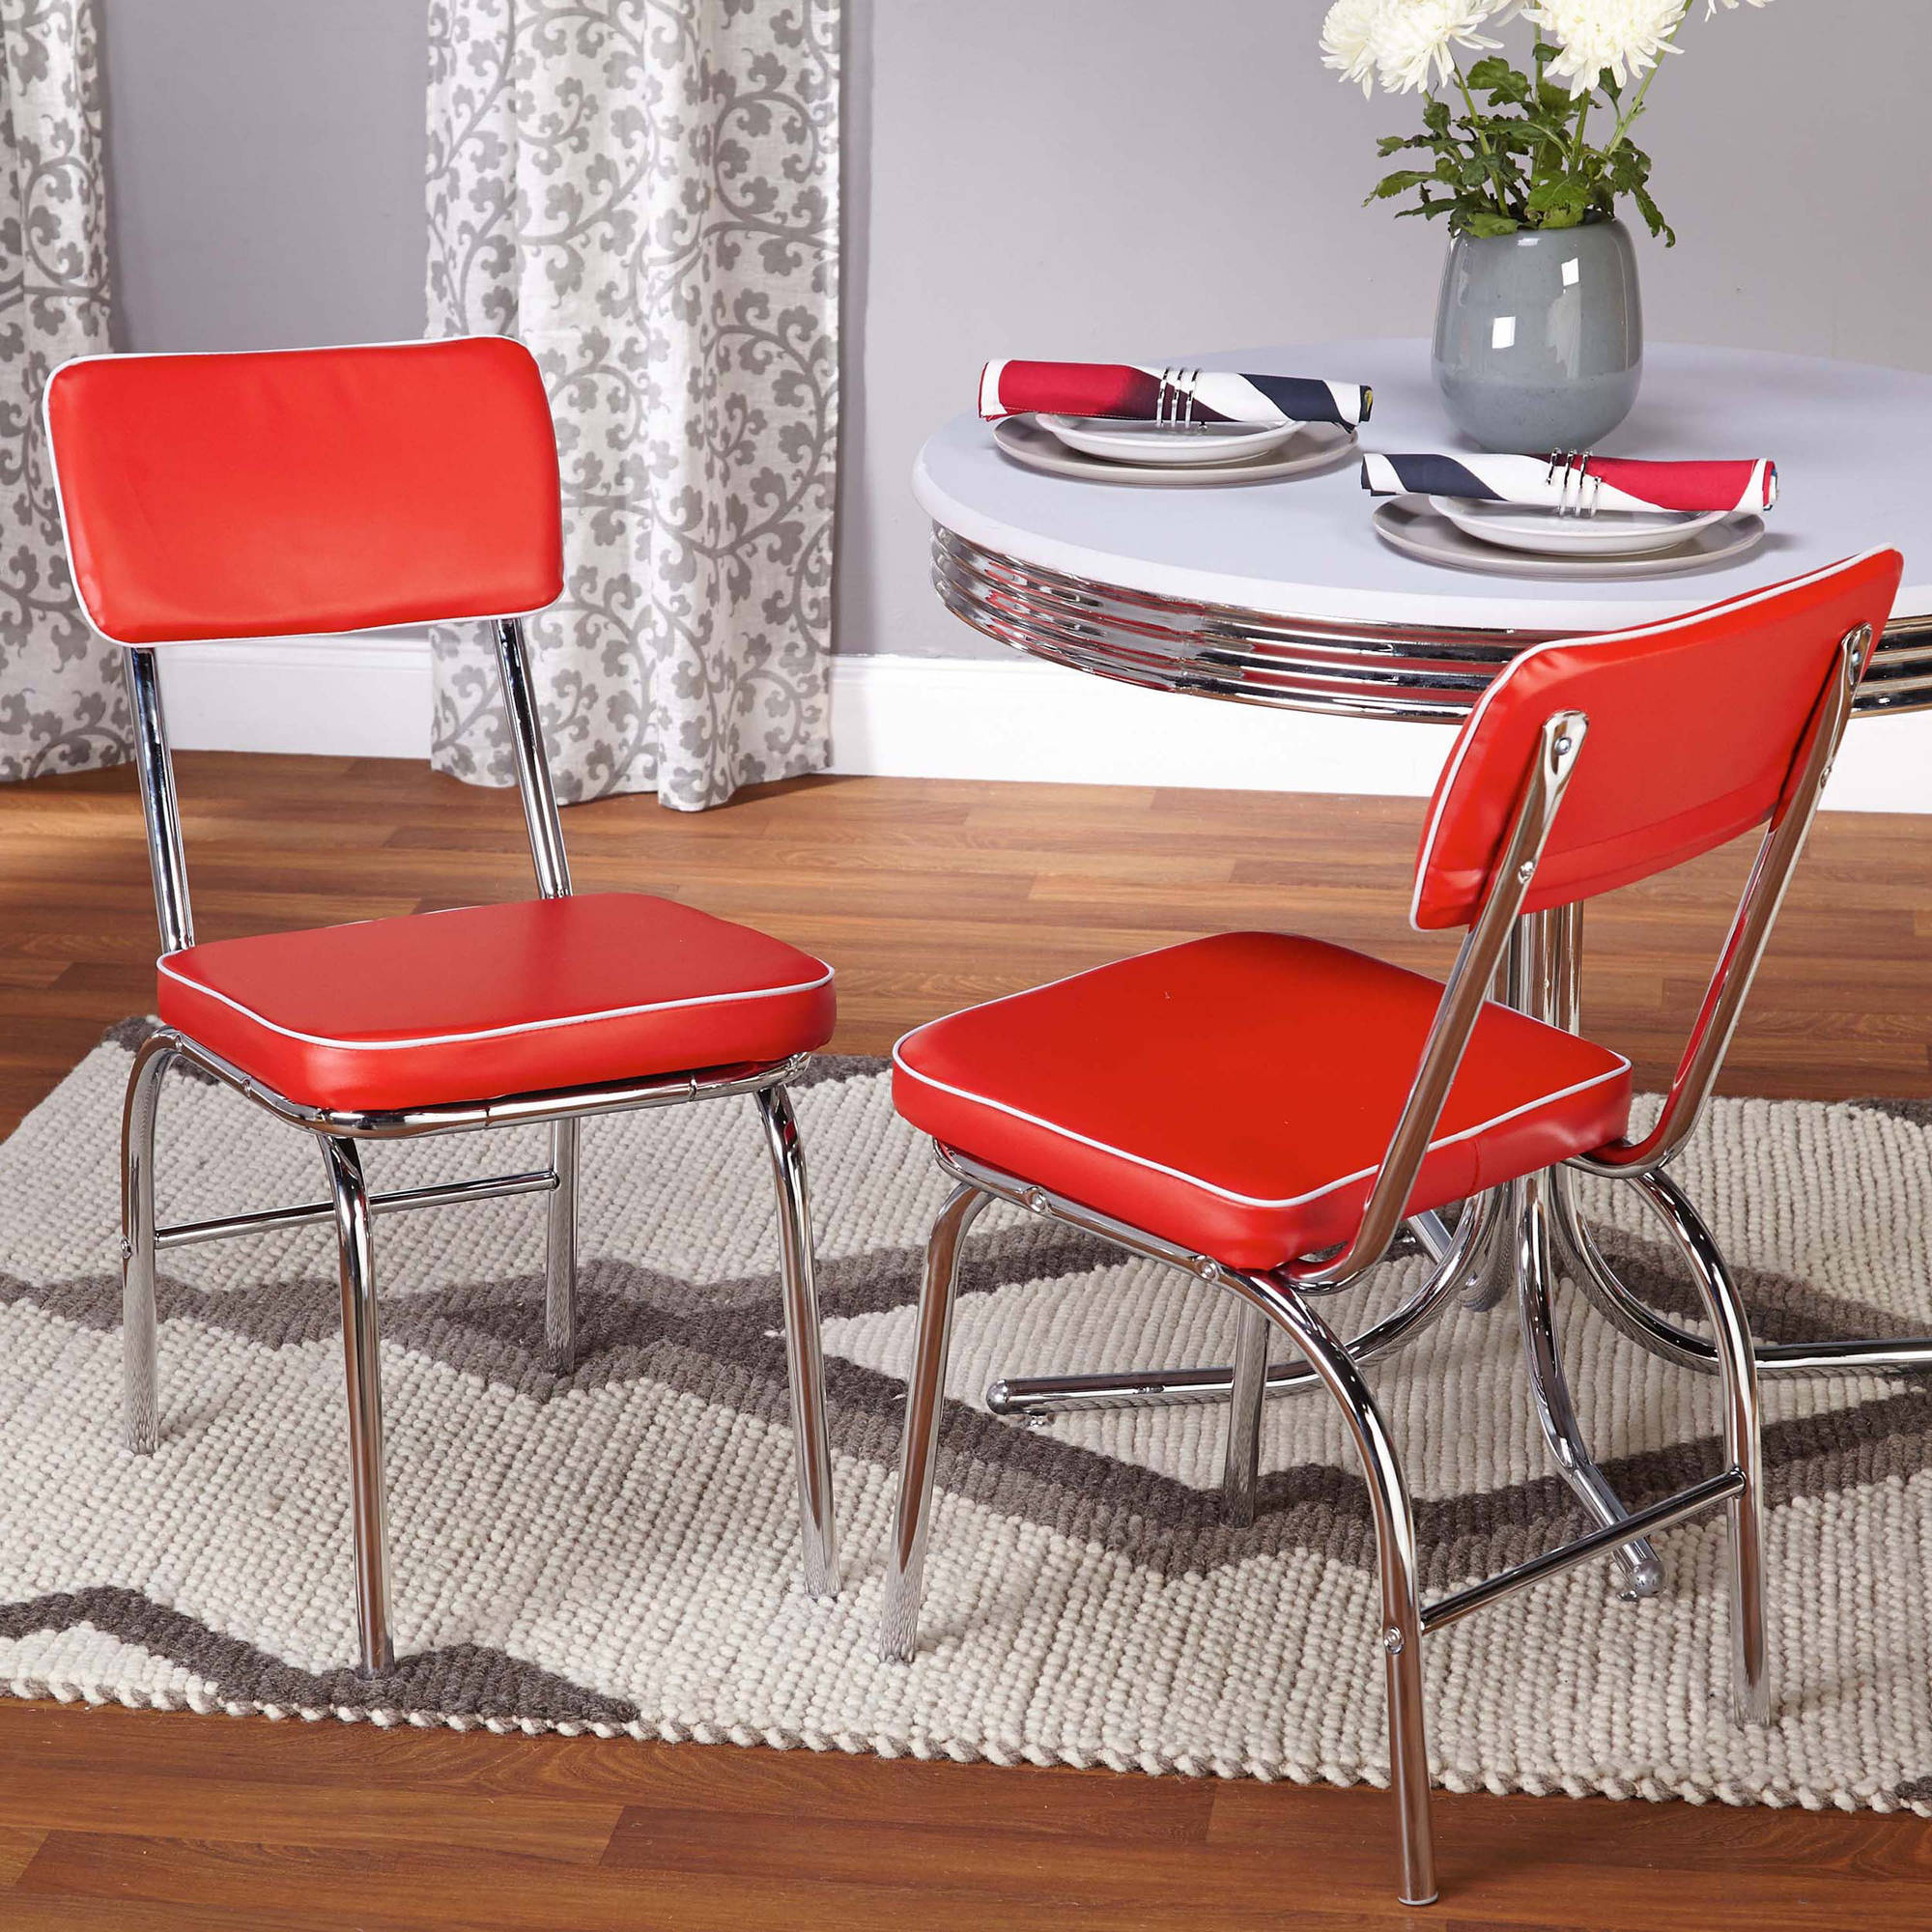 retro dining chairs, set of 2, red - walmart